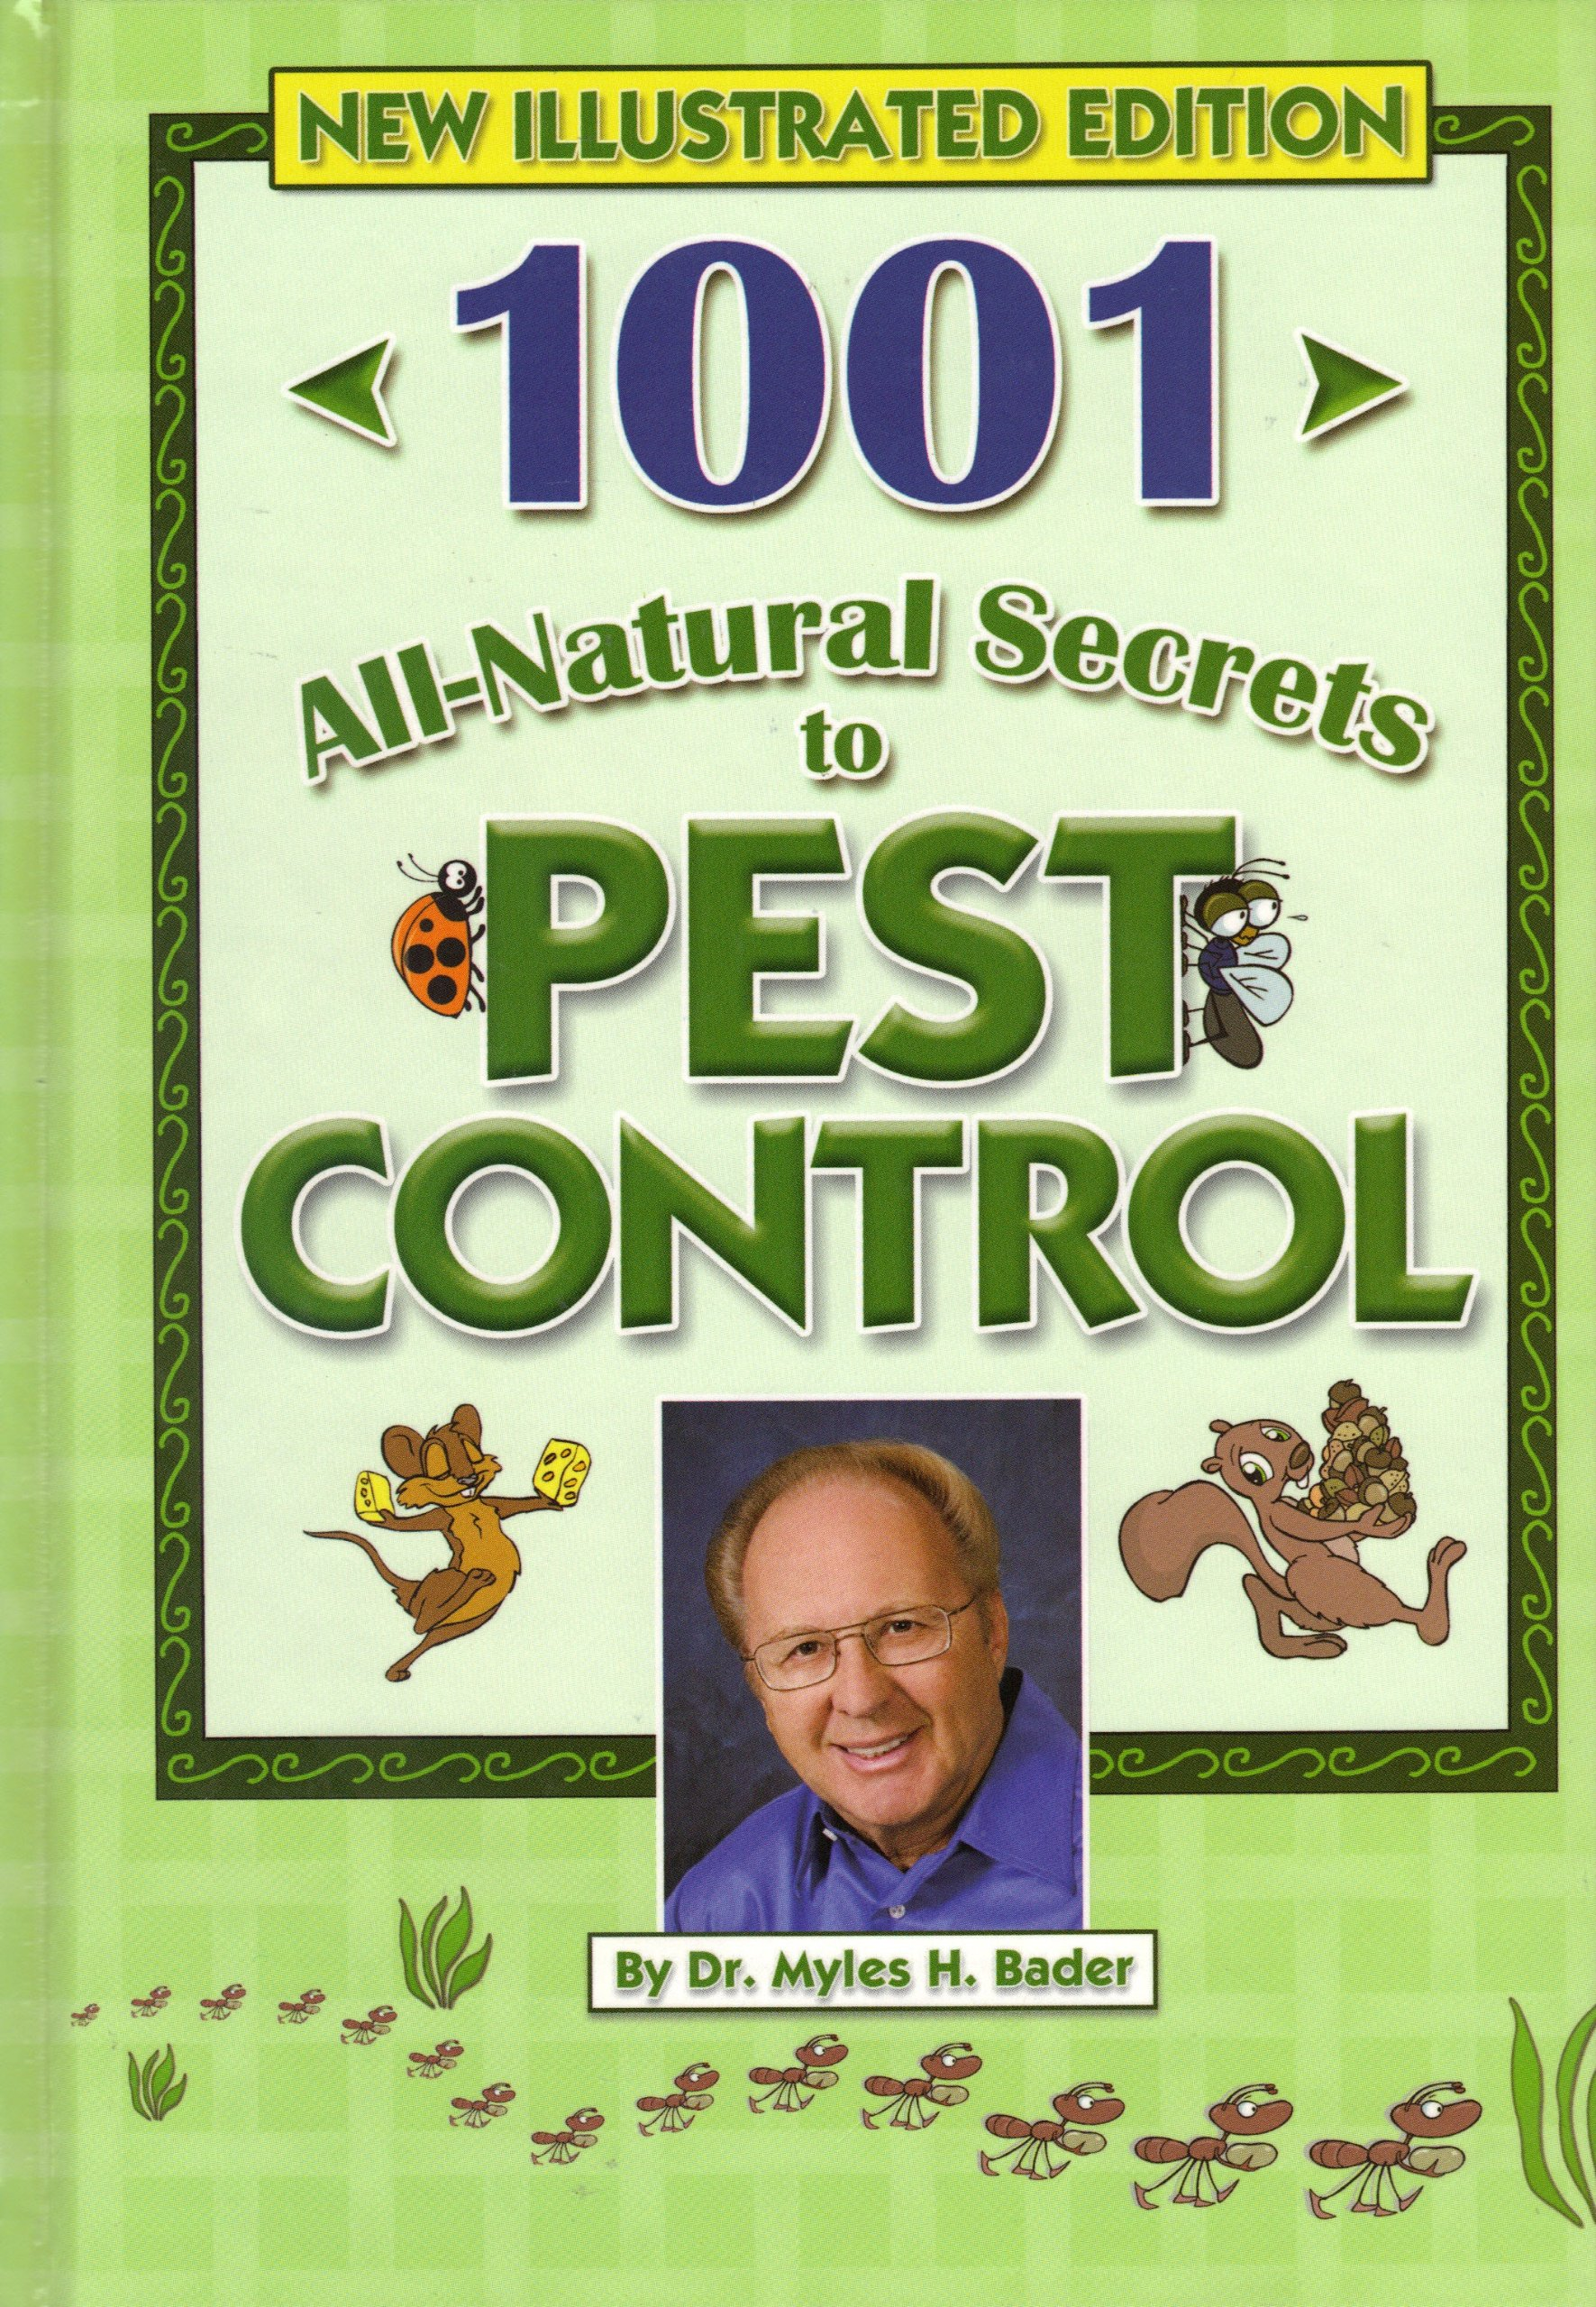 Download 1001 All-Natural Secrets to Pest Control (If They Are FLYING CRAWLING BURROWING OR SNEAKING IN THIS BOOK HAS THE SOLUTION) pdf